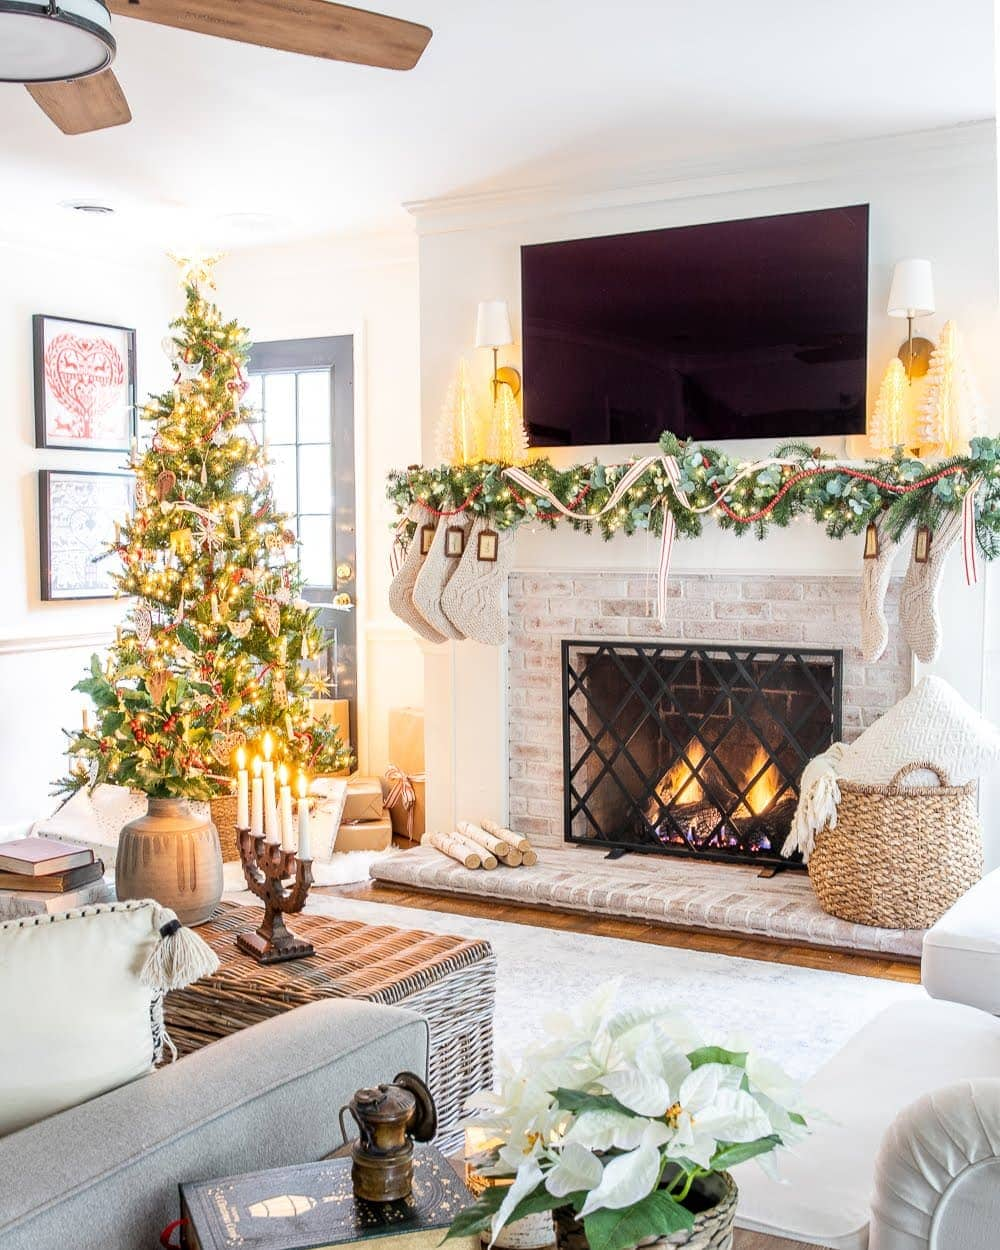 Christmas decor ideas | vintage modern living room mantel with TV and Christmas tree